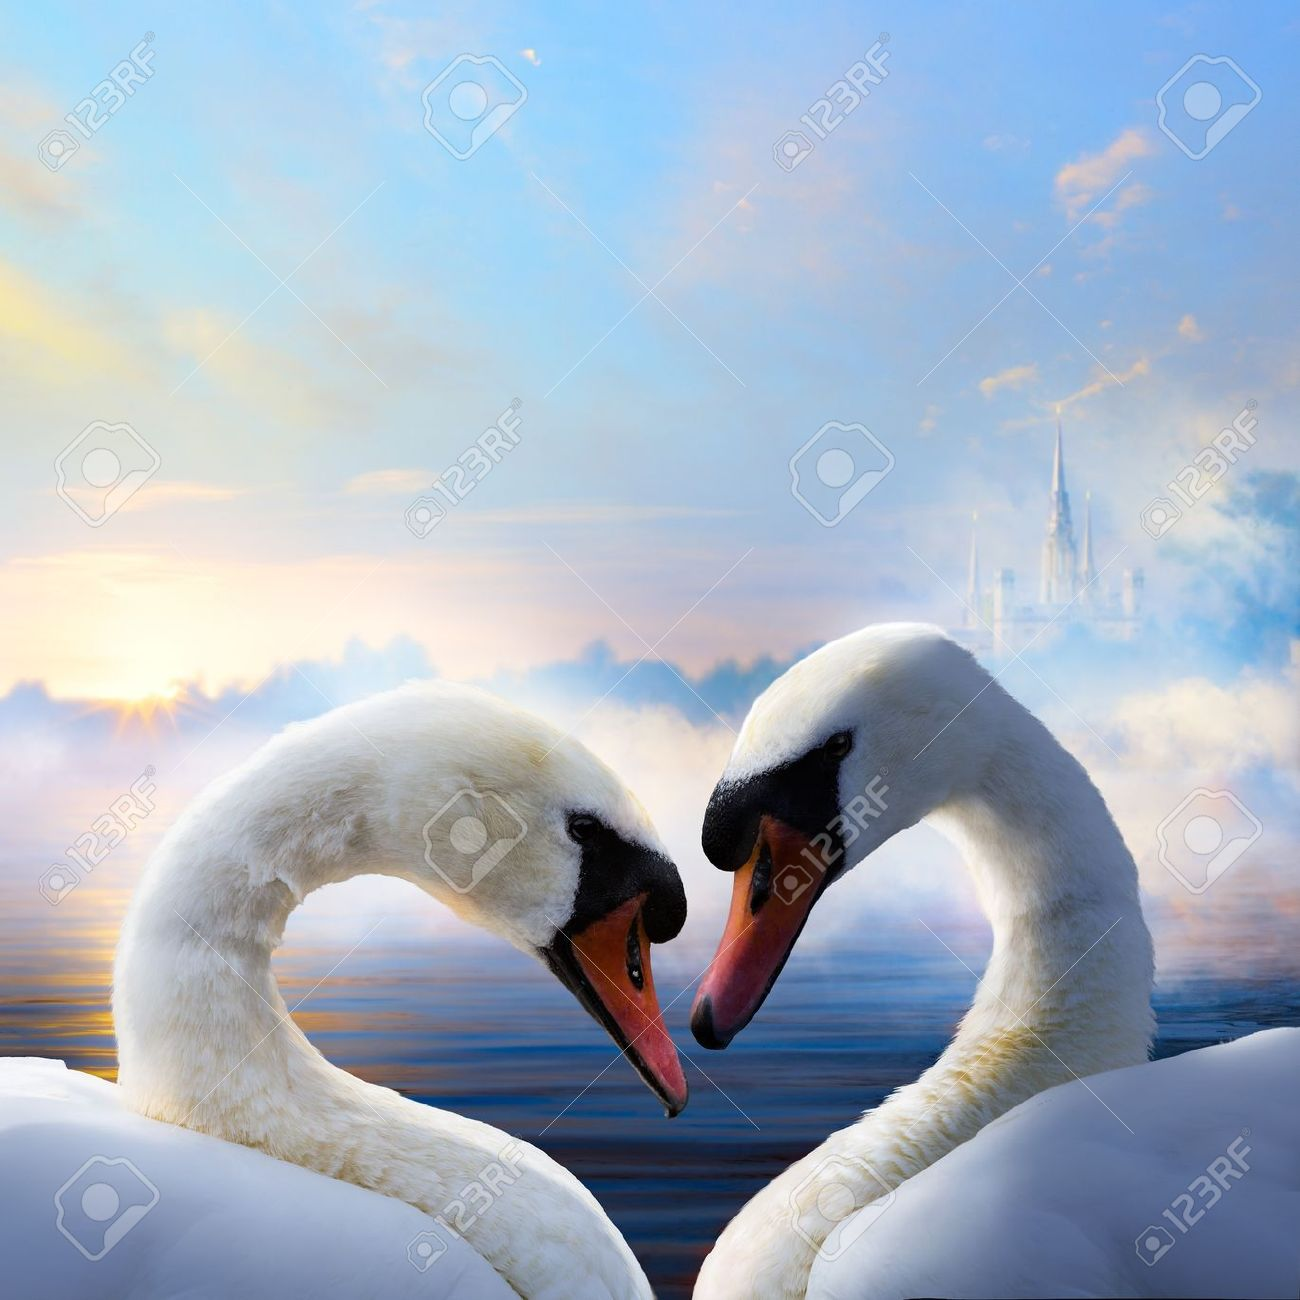 pair of swans in love floating on the water at sunrise of the day Stock Photo - 20937349